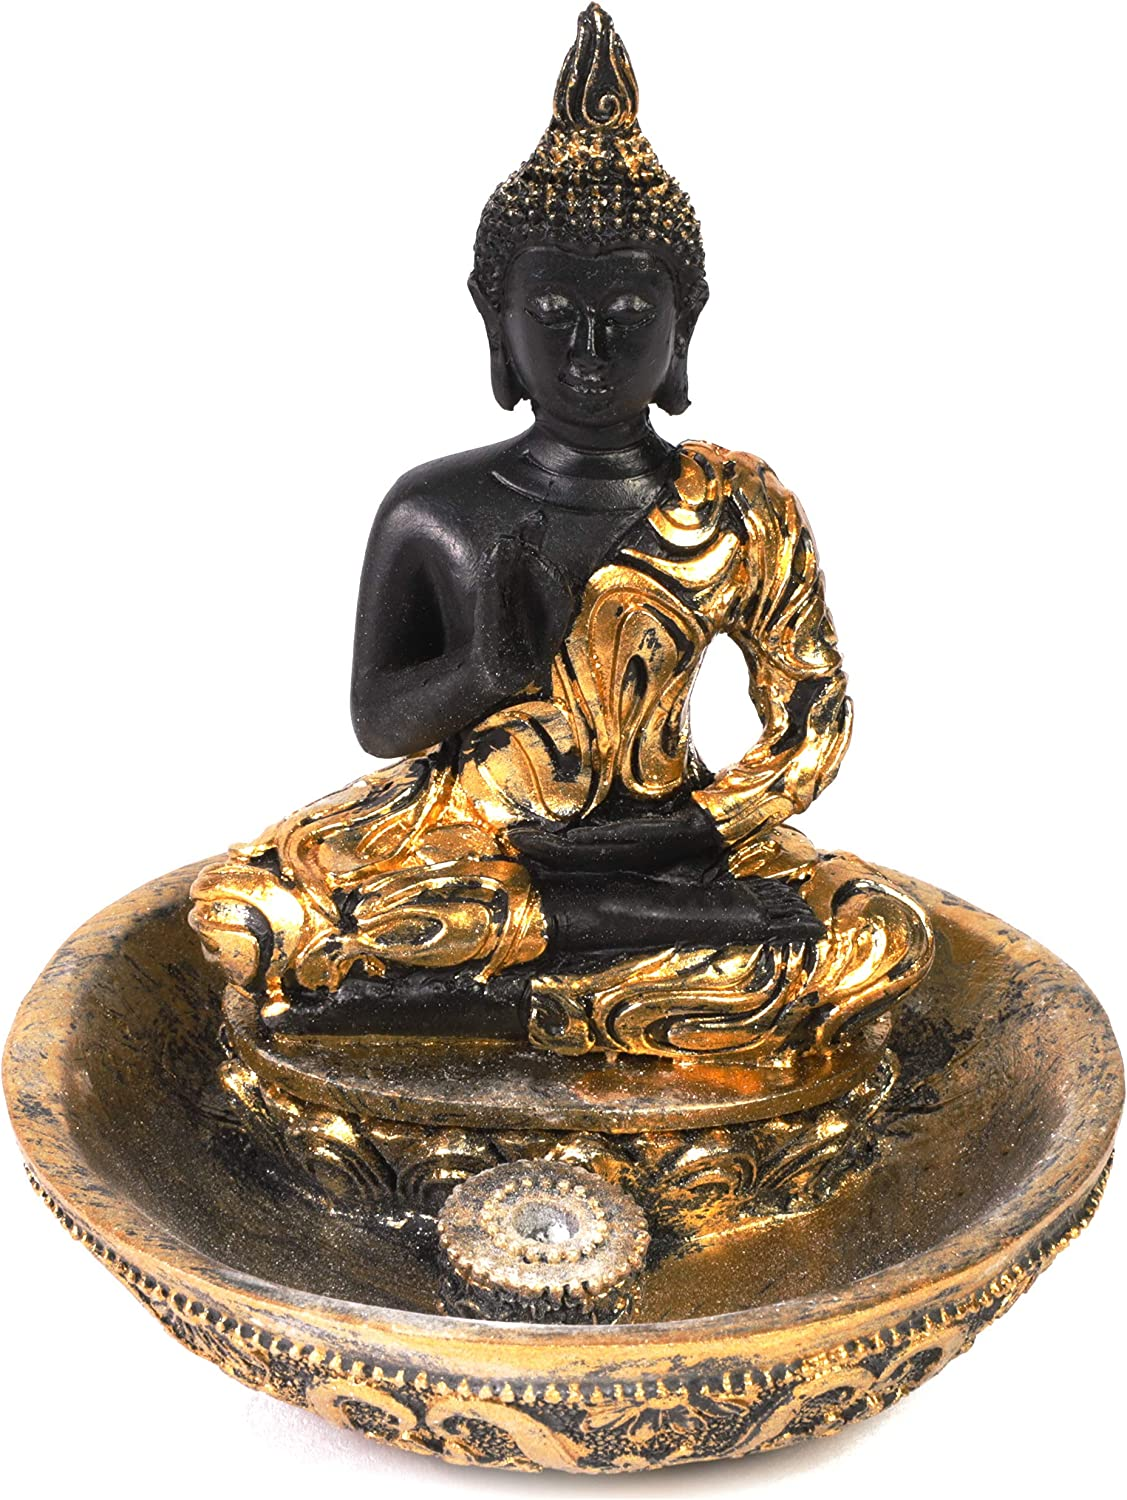 Juvale Buddha Tealight Statue for Table, Desktop, or Zen Garden (Black and Gold, 4 in)